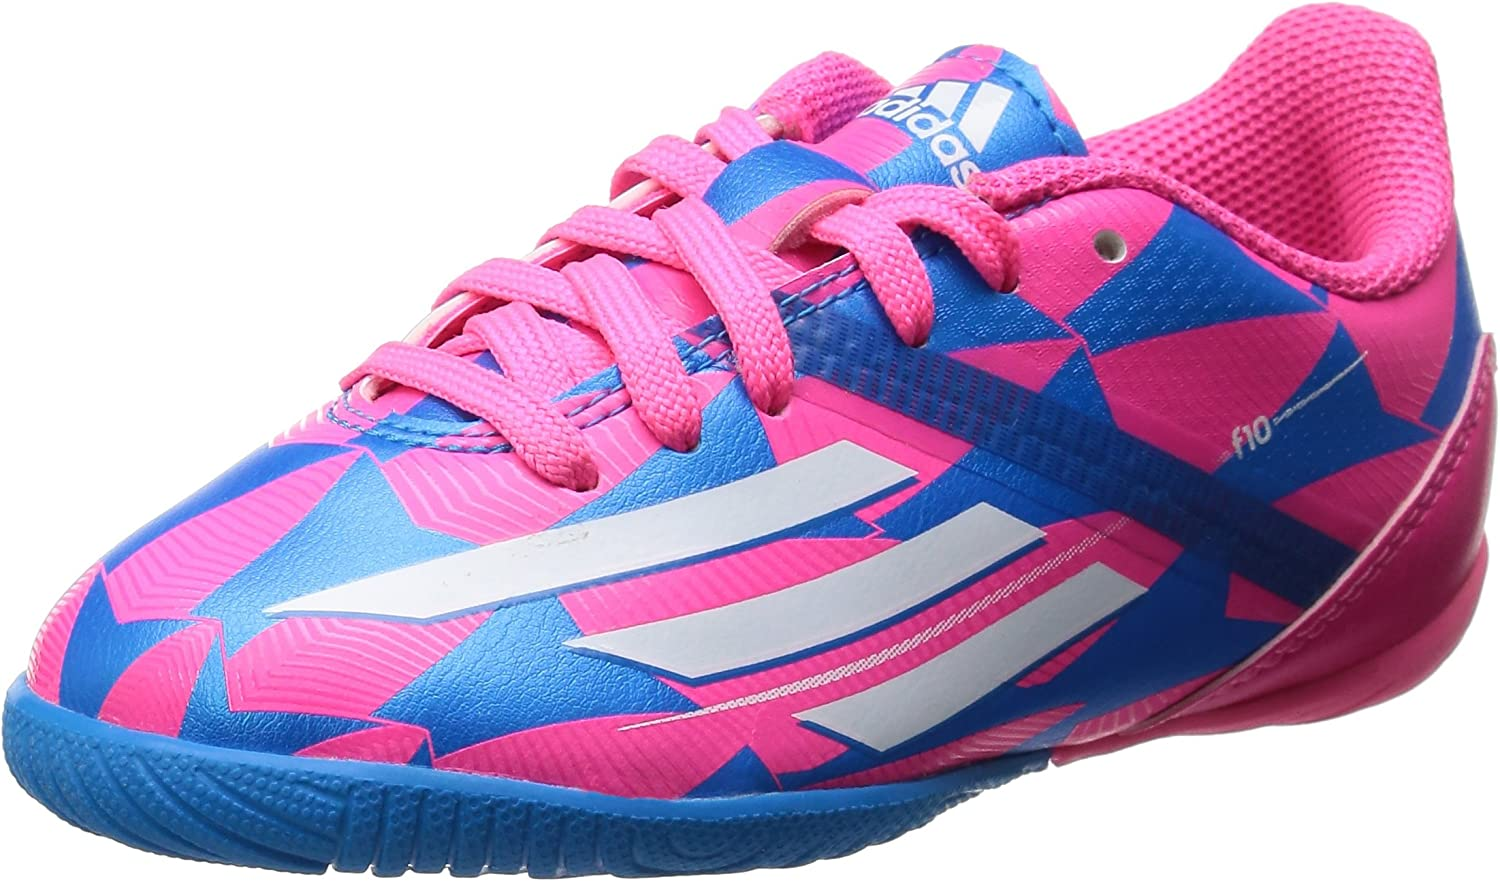 F10 Kids in Football Trainers Neon Pink Running White Solar bluee